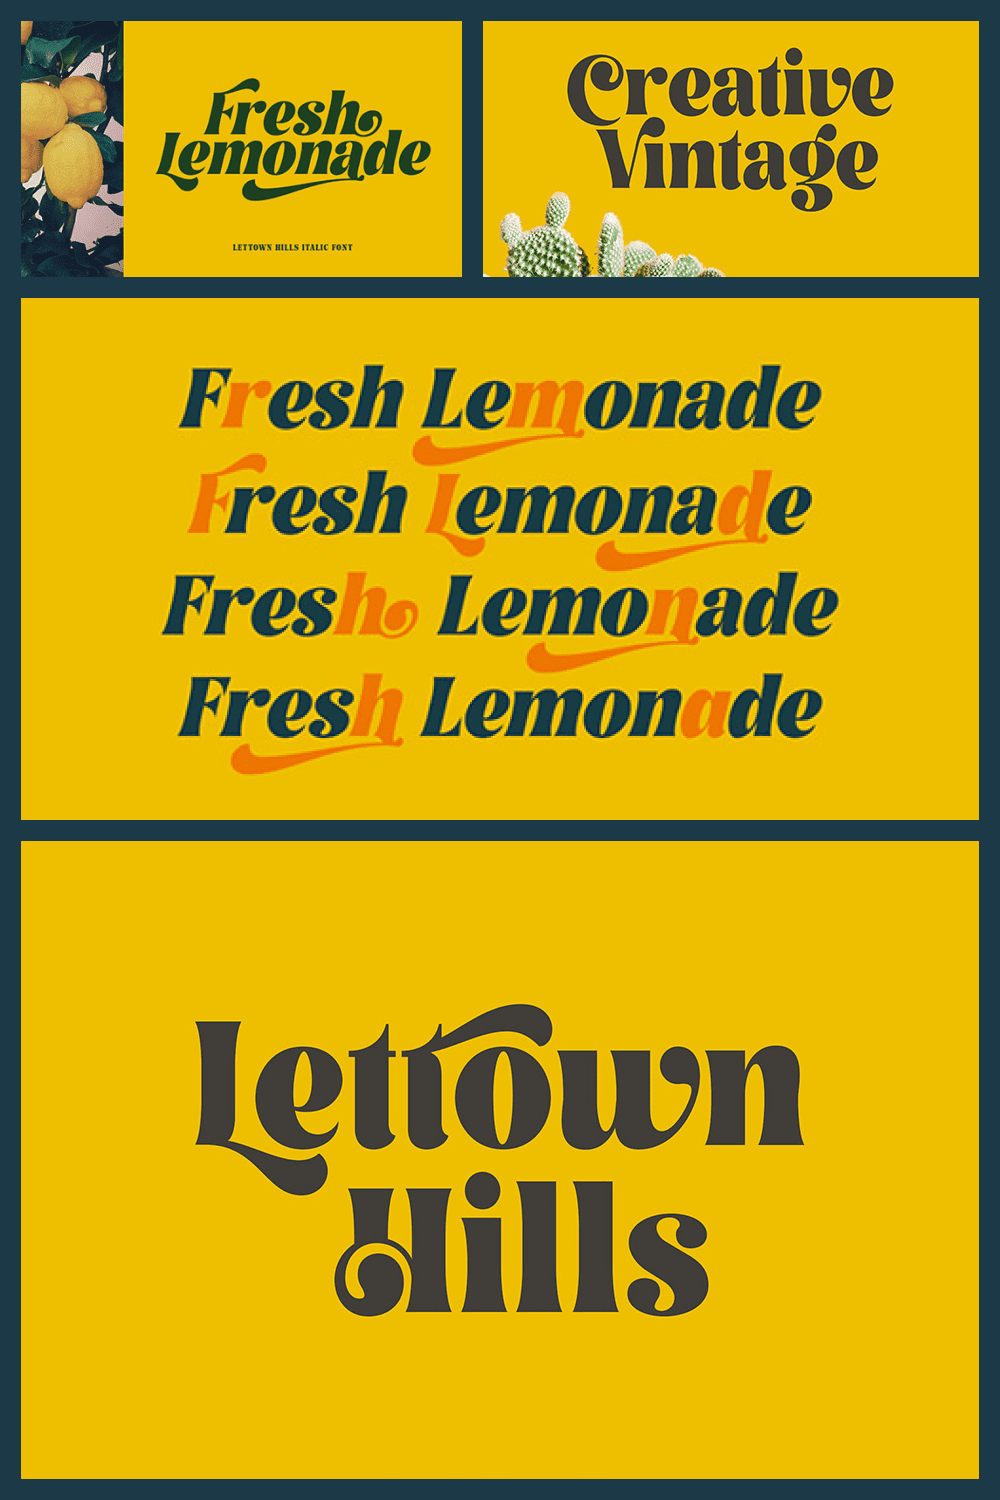 Stylish and creative font with interesting curled endings.